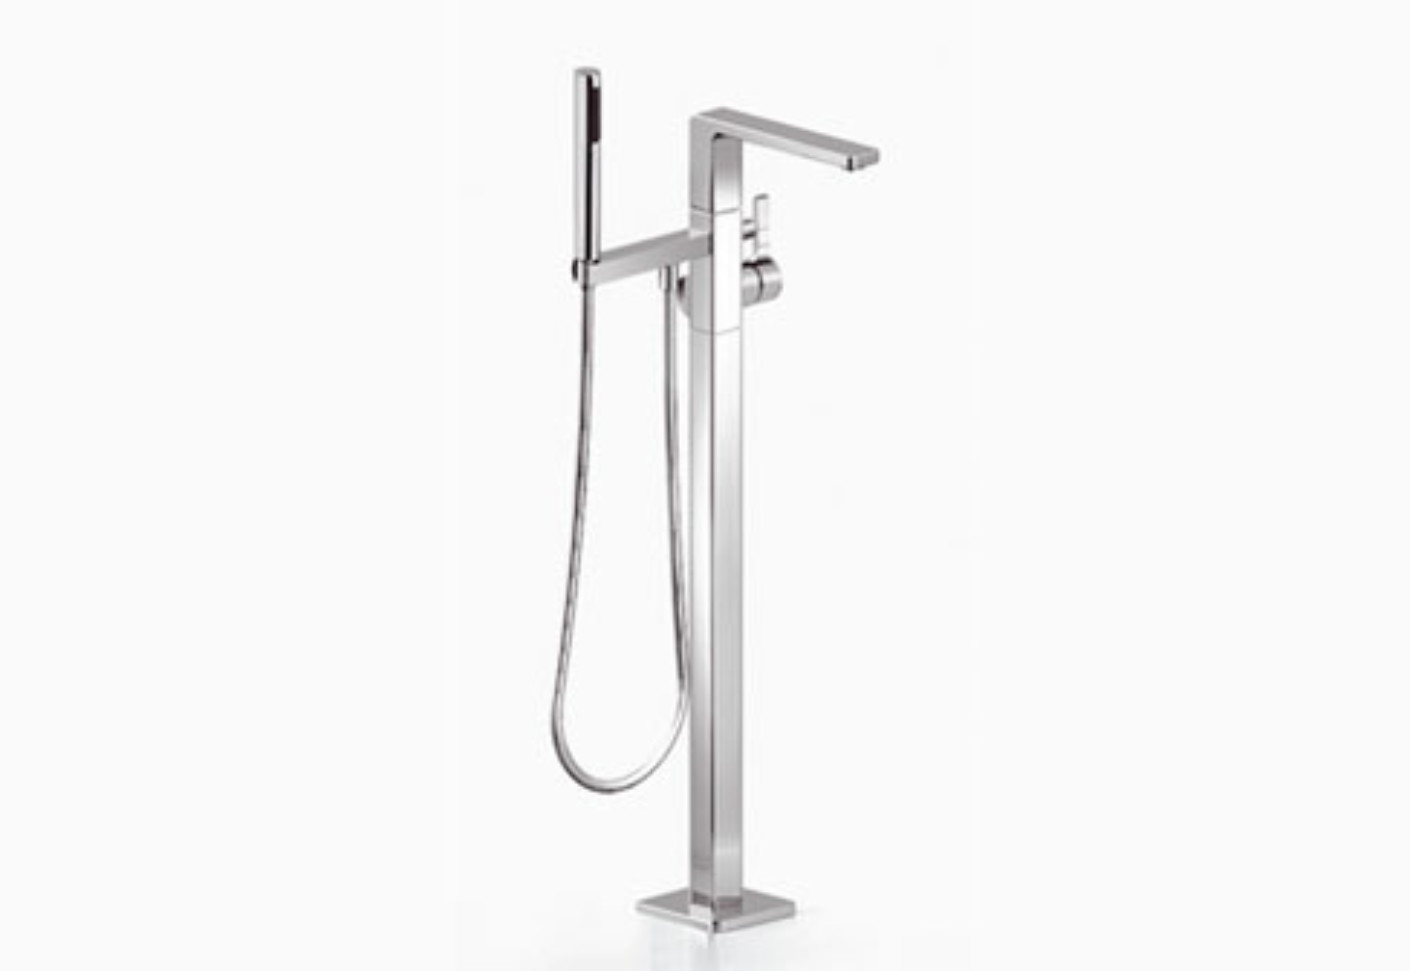 Fabric Exhibition Stand Mixer : Lulu single lever bath mixer with stand pipe by dornbracht